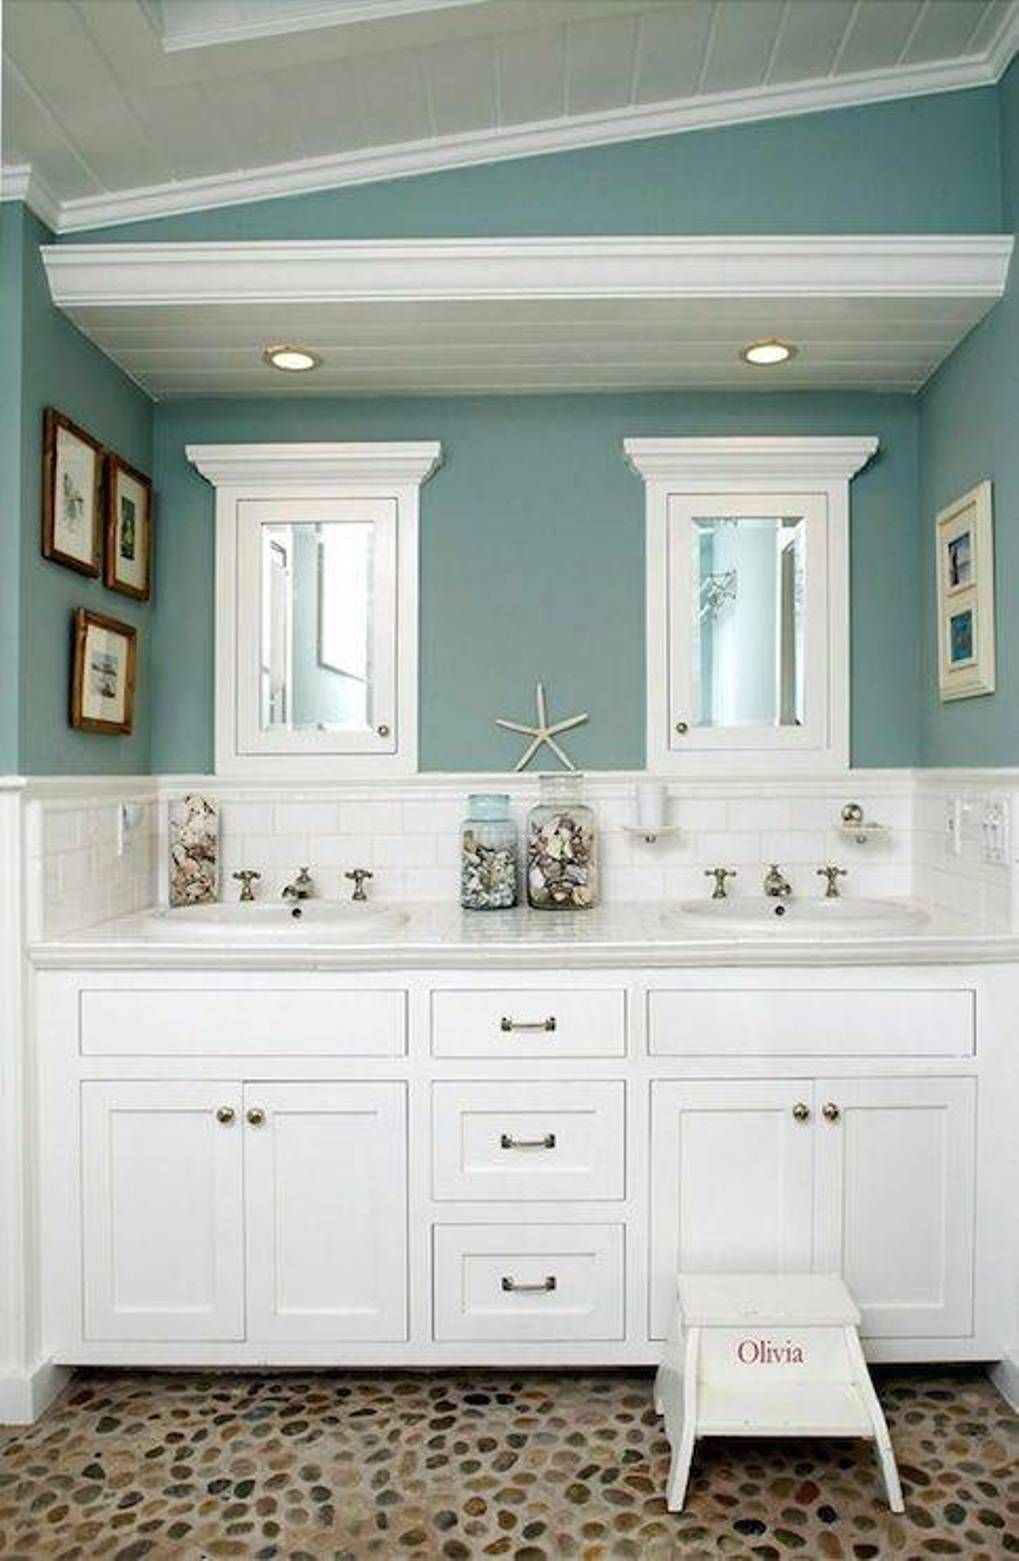 Bathroom Timeless White Vanity With Double Sinks And Faucets Recessed Medicine Cabinets